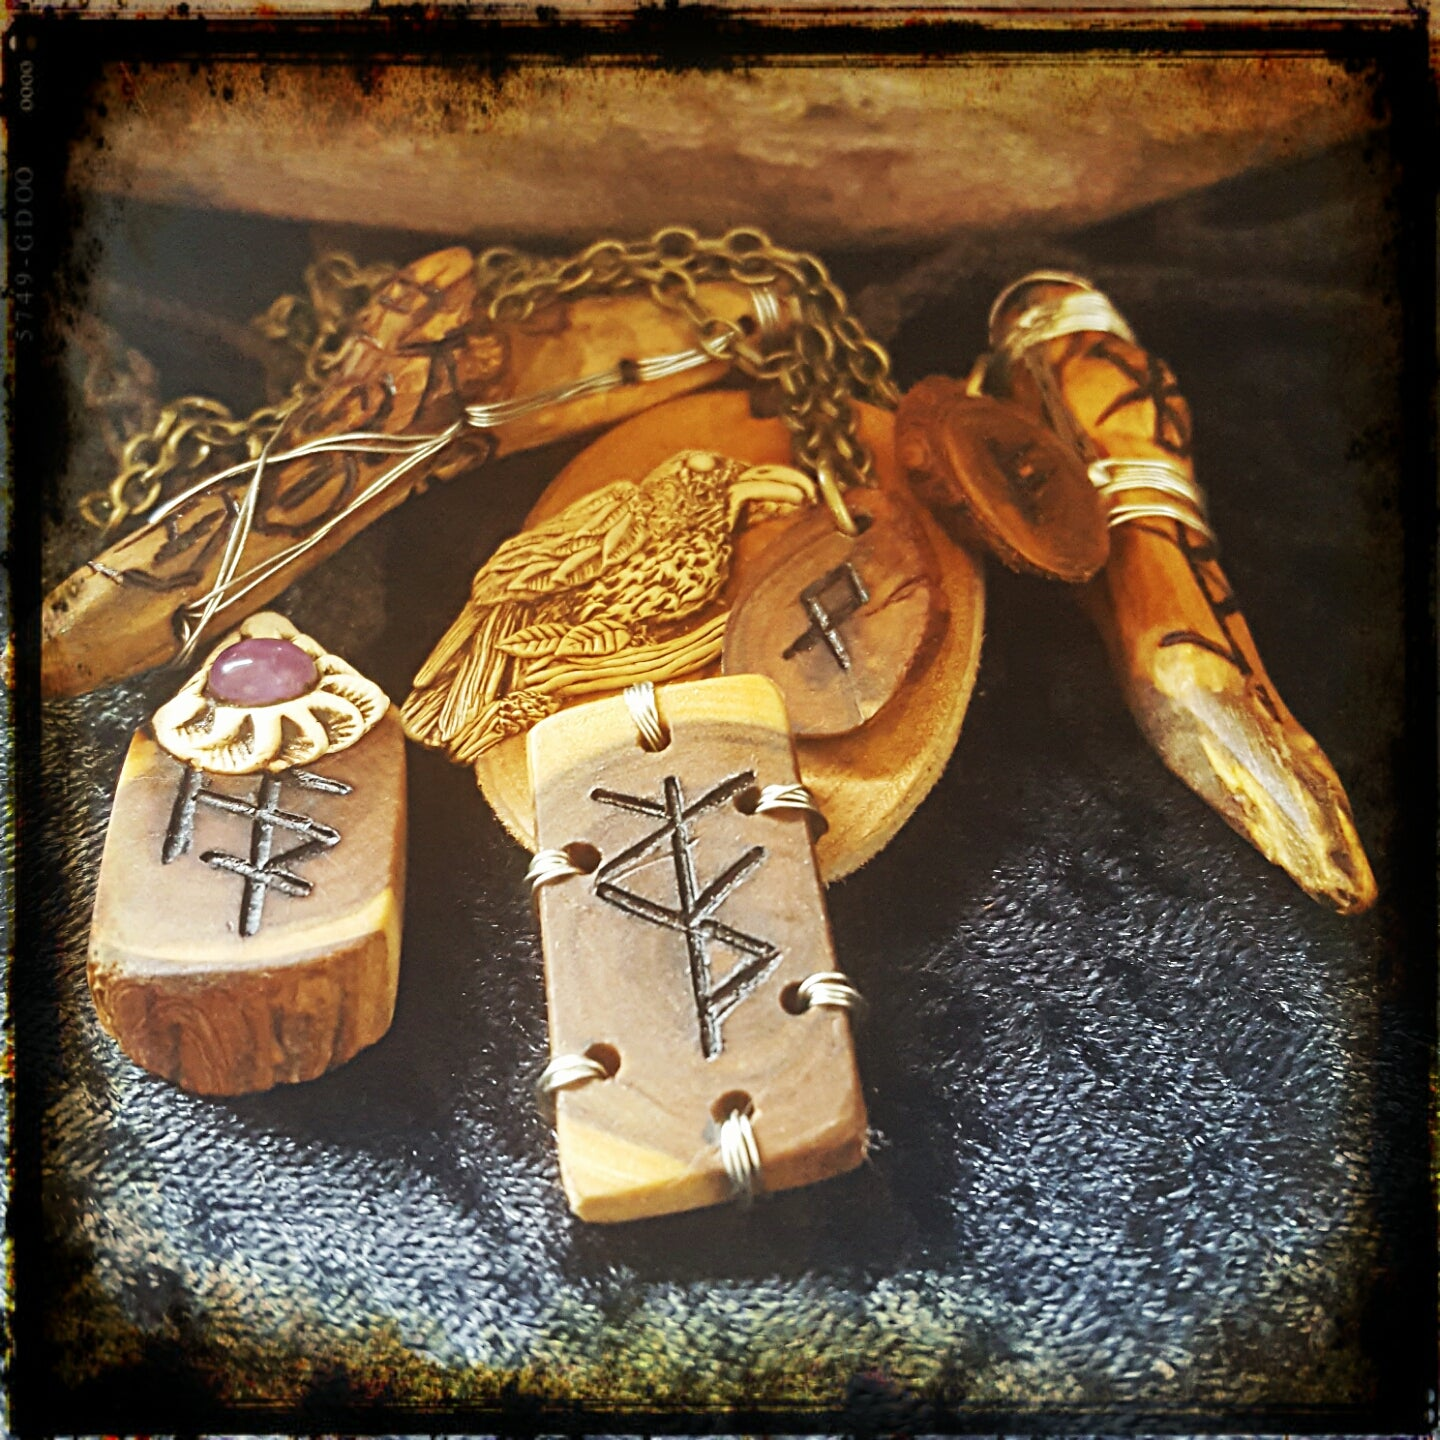 Where to start when starting your journey into learning Runes?